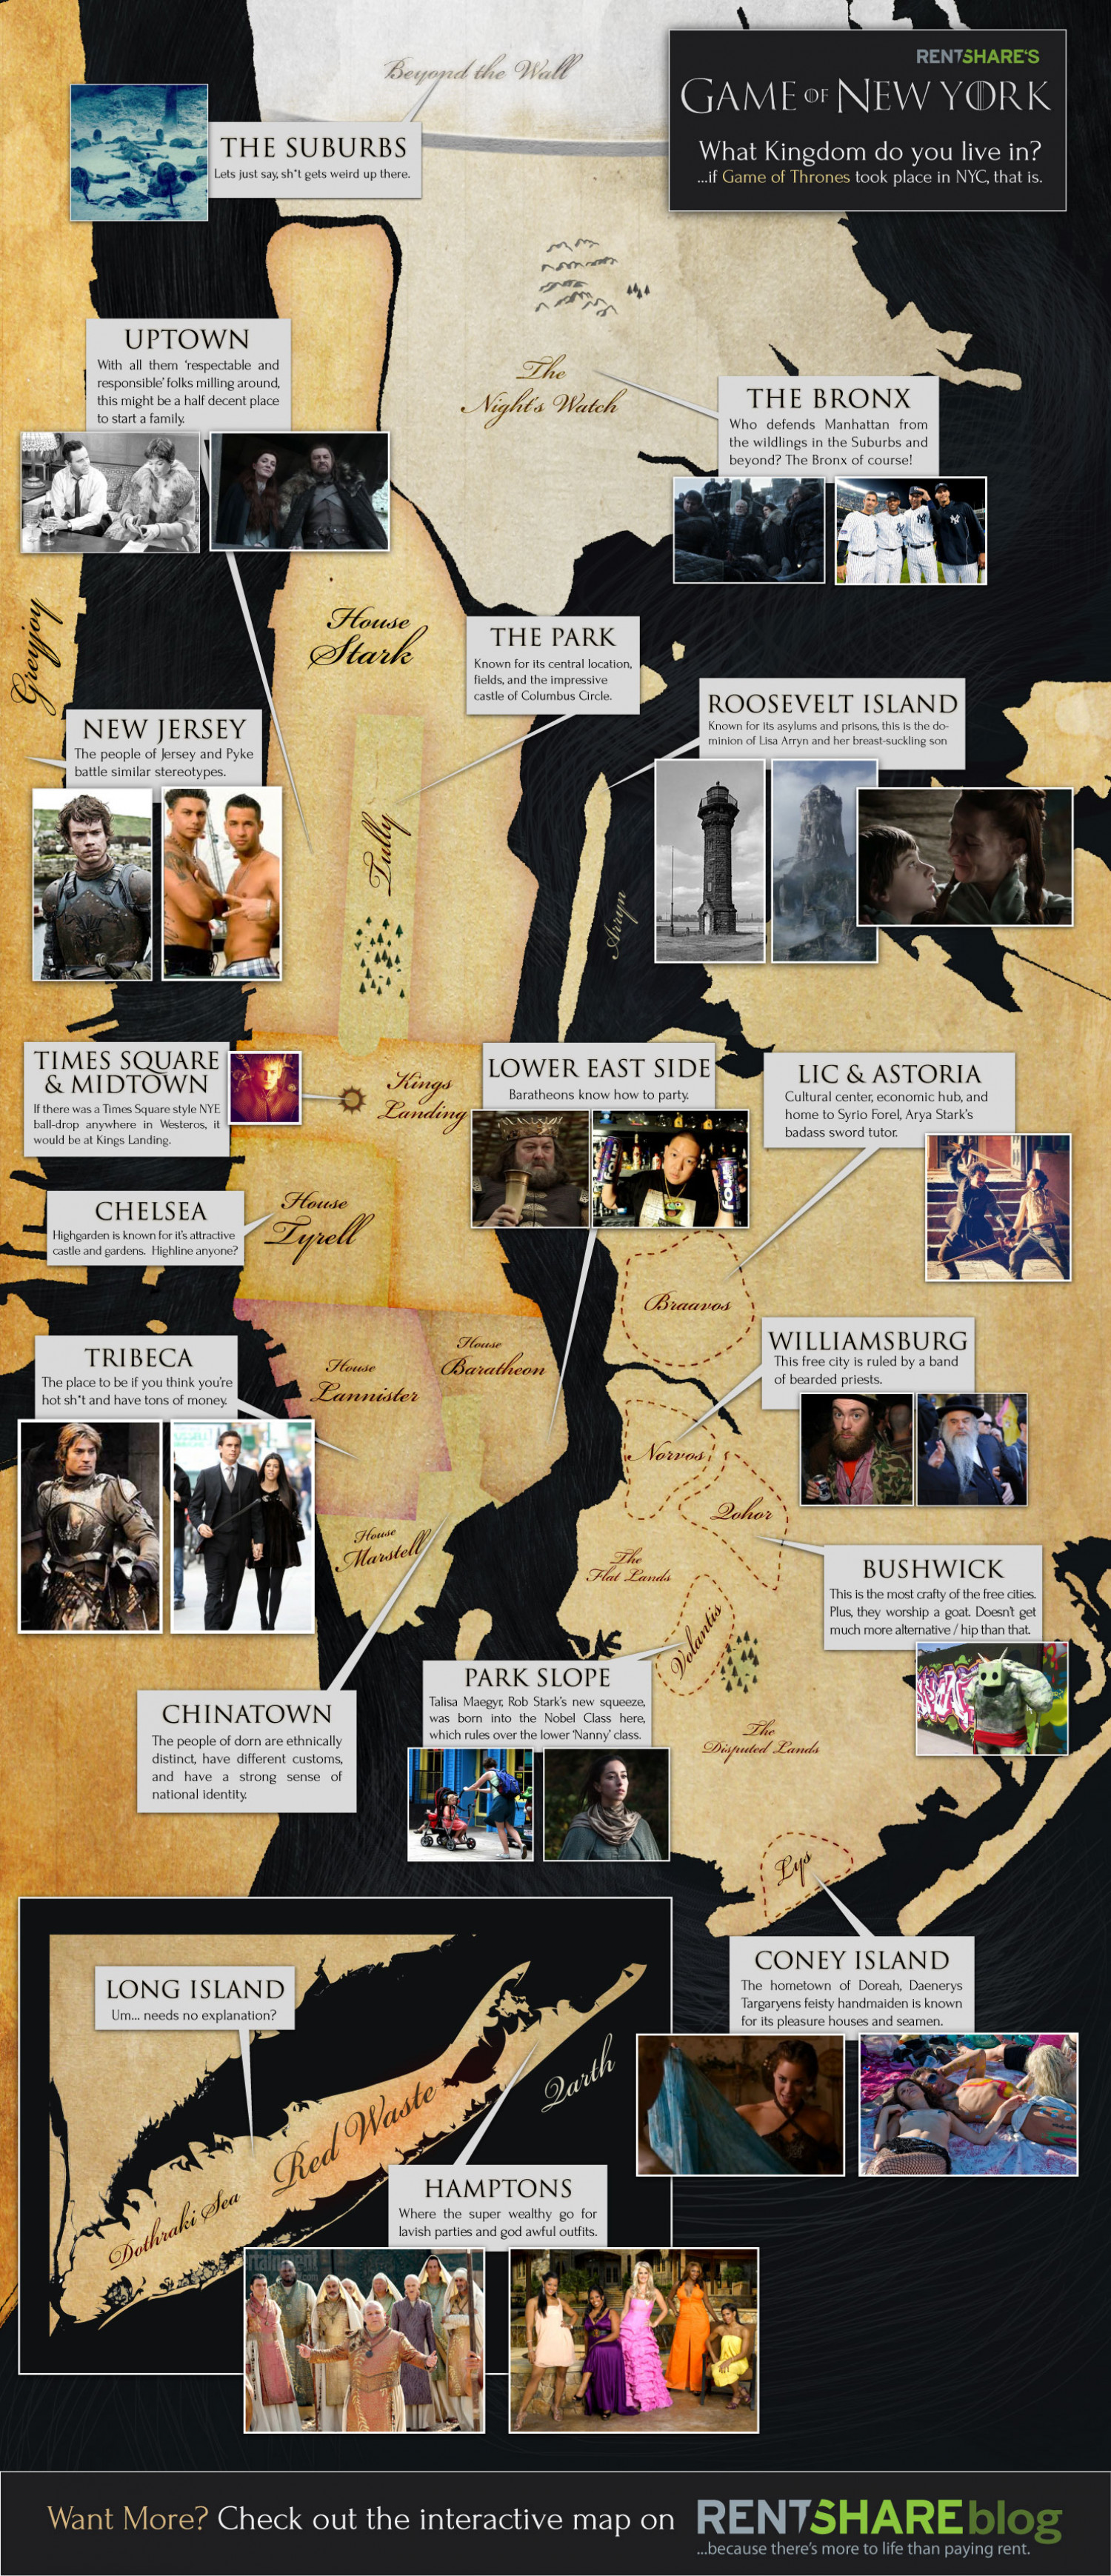 If Game of Thrones took place in NYC... Infographic